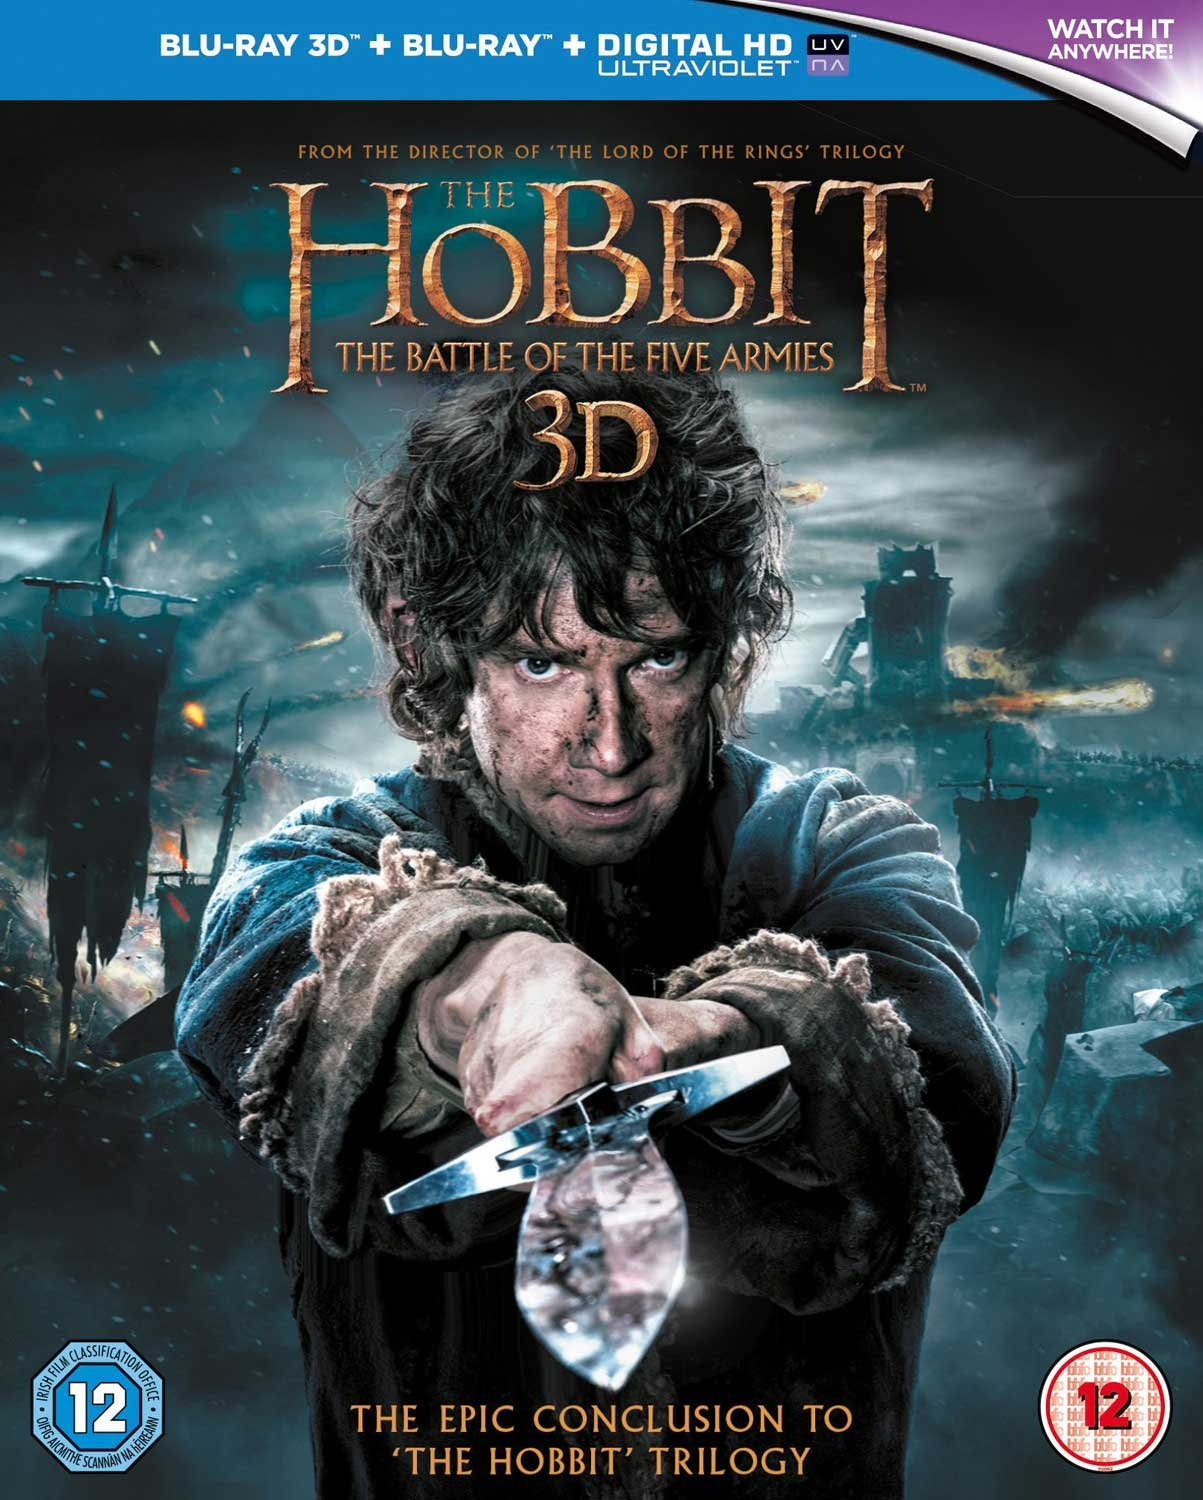 The Hobbit: The Battle of the Five Armies [Blu-ray 3D + Blu-ray] [2015] Martin Freeman Richard Armitage Peter Jackson MSE1295117